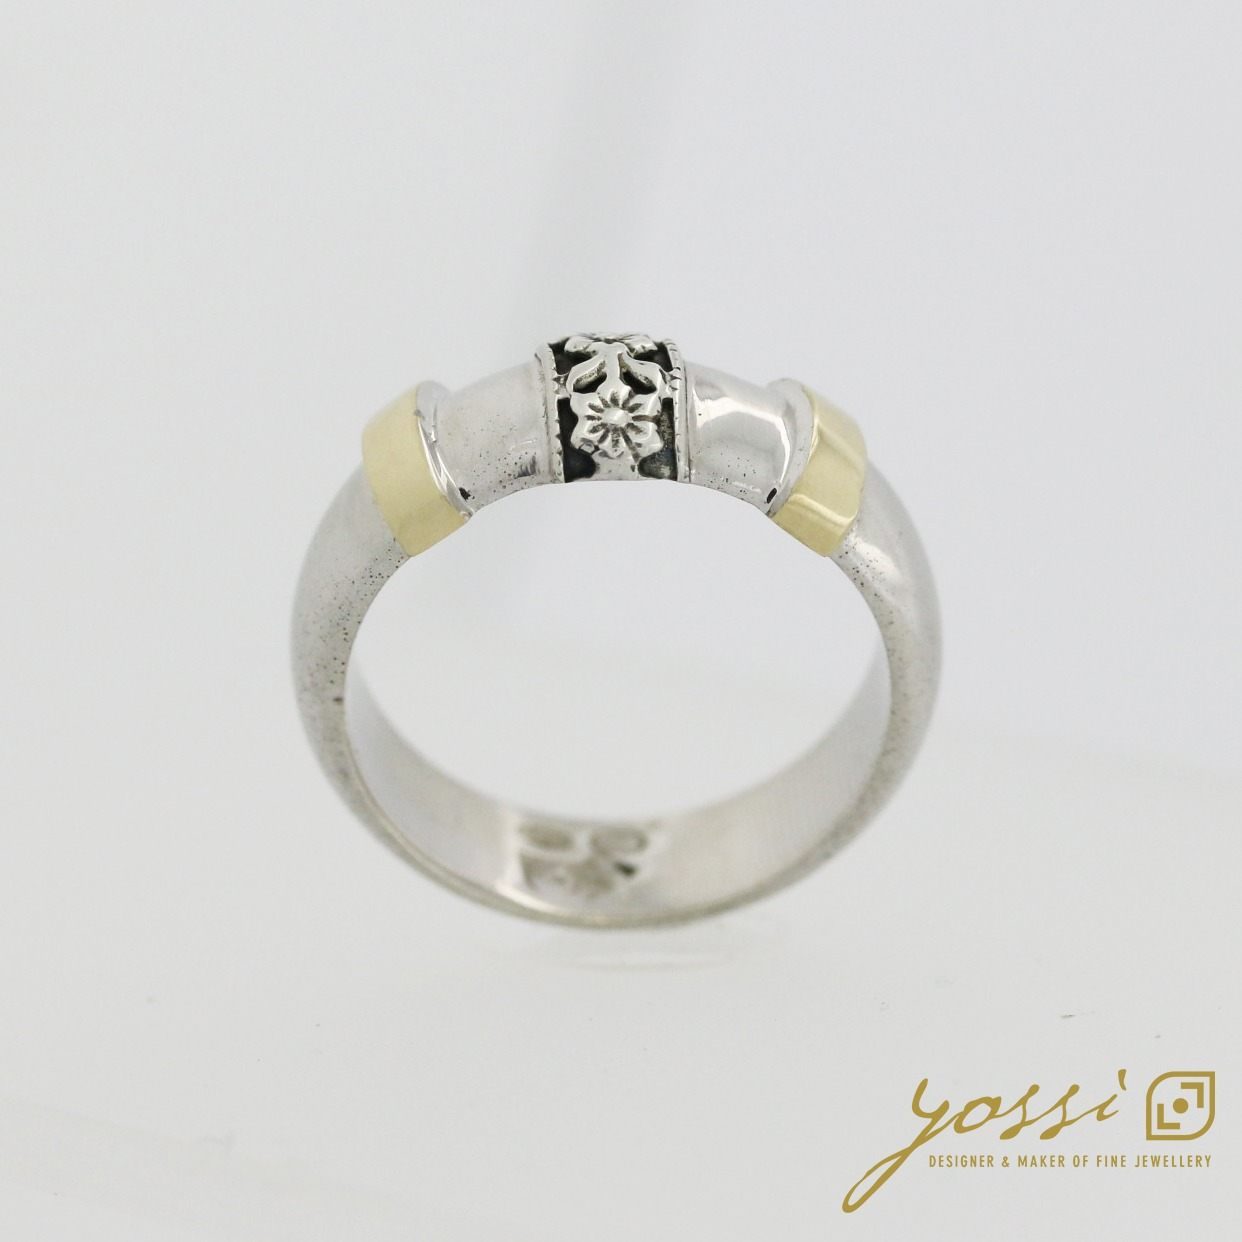 Decorative Silver & Gold Ring 6